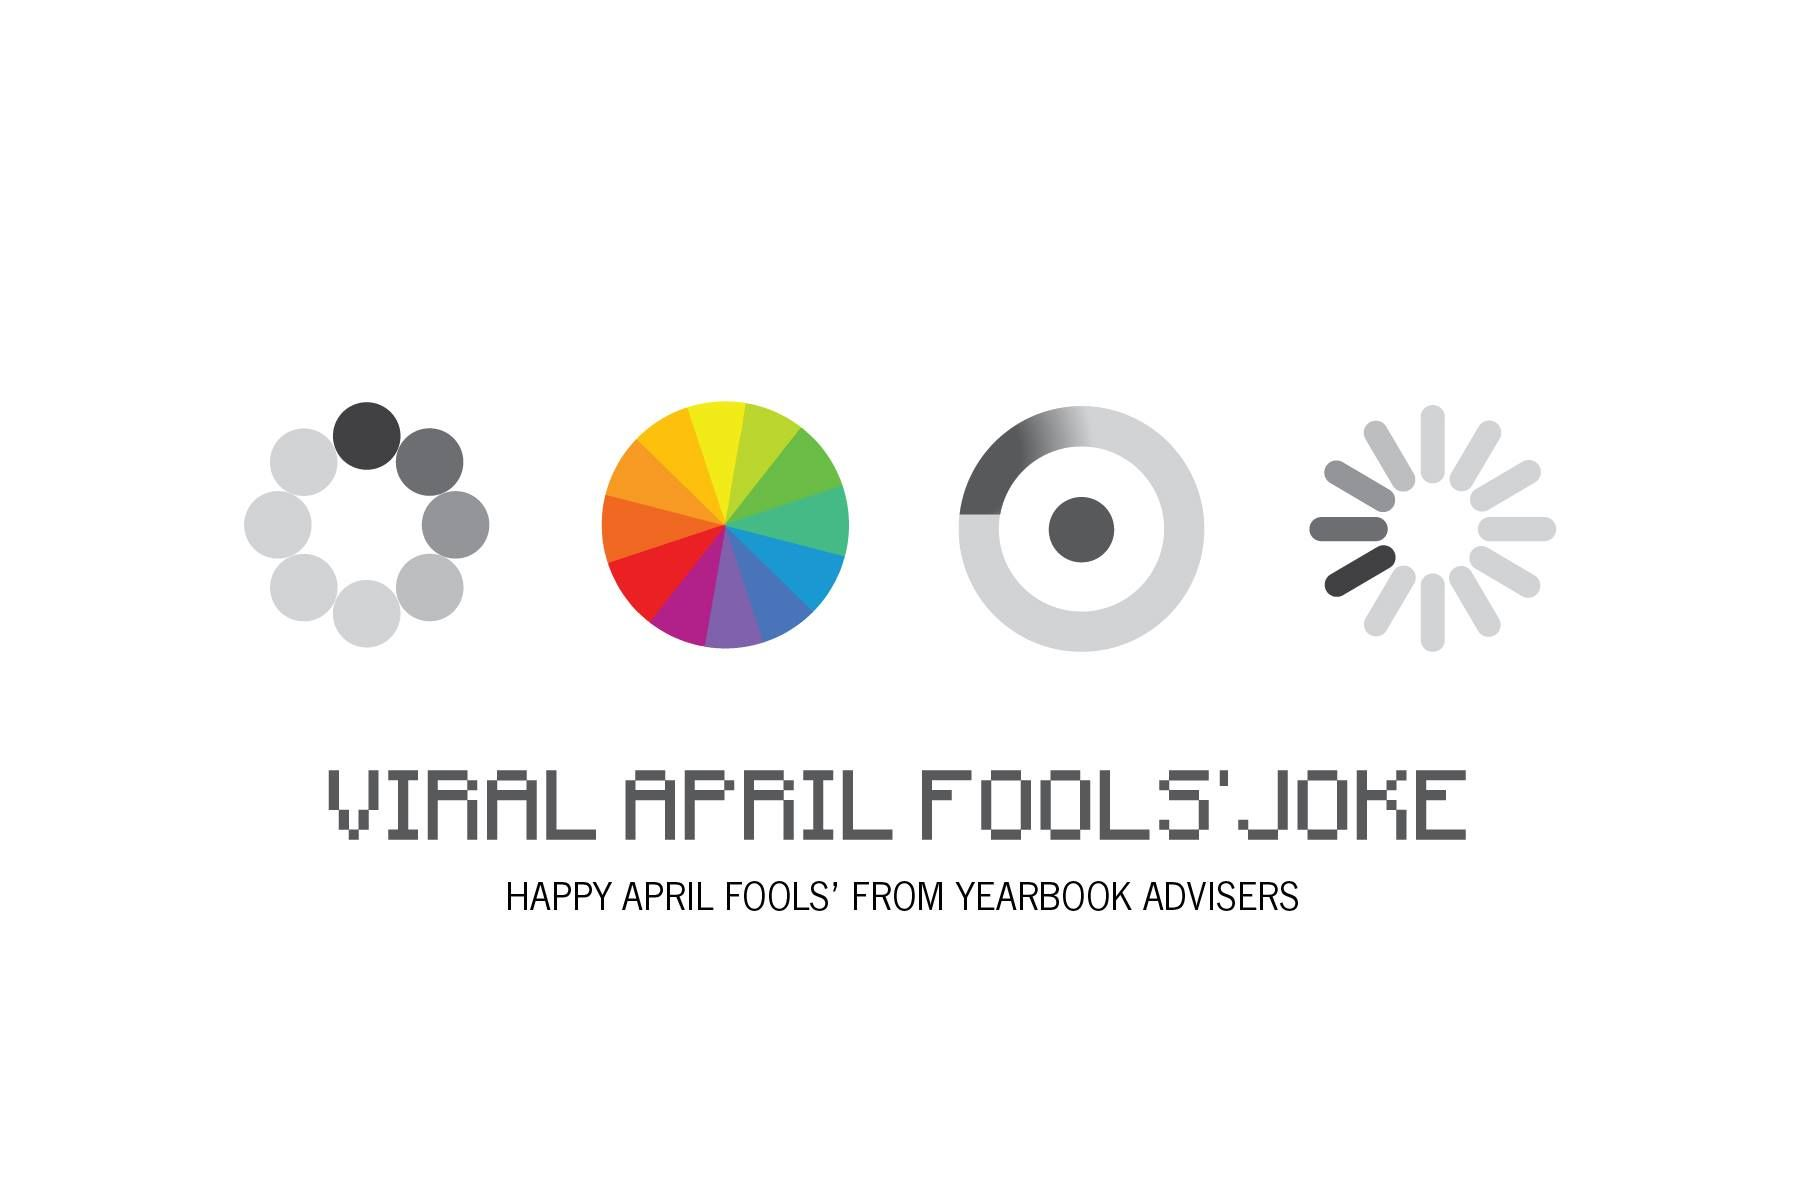 We hope your computer doesn't play any tricks on you ‪#‎aprilfools‬ ‪#‎joke‬ ‪#‎technology‬ ‪#‎design‬ ‪#‎yearbook‬